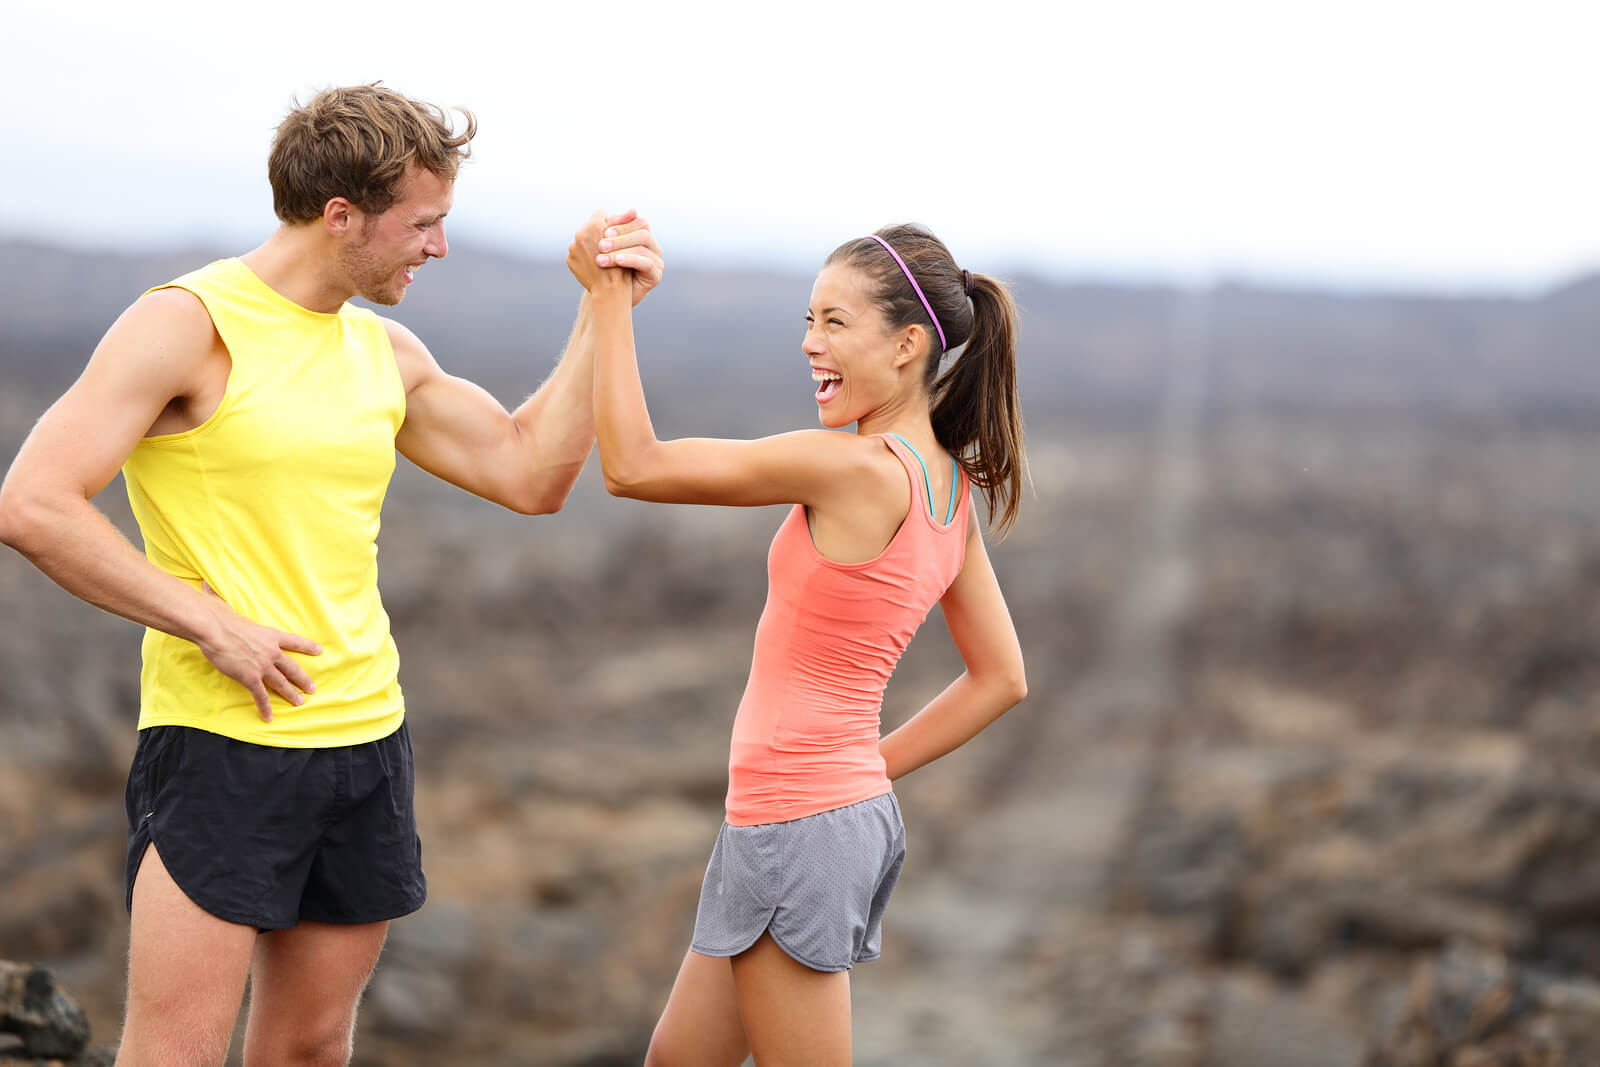 Fitness sport running couple celebrating cheerful and happy giving high five